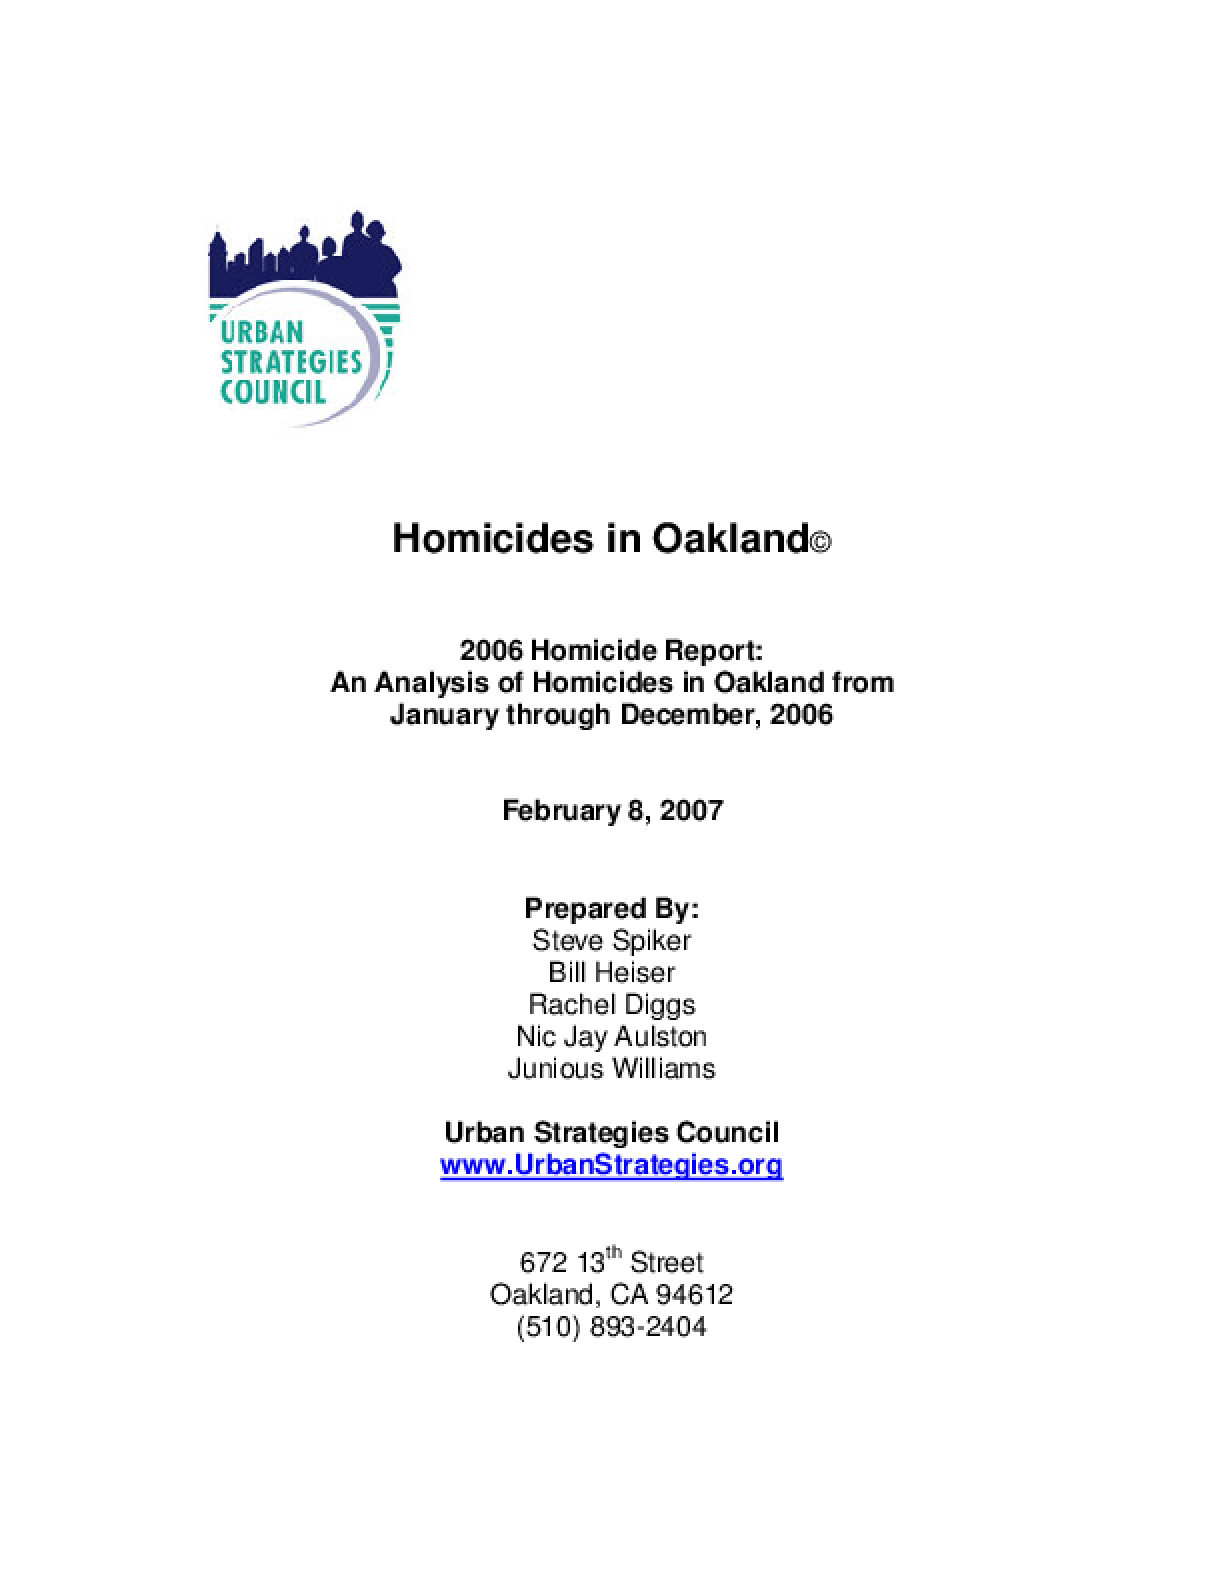 2006 Homicide Report: An Analysis of Homicides in Oakland from January through December, 2006